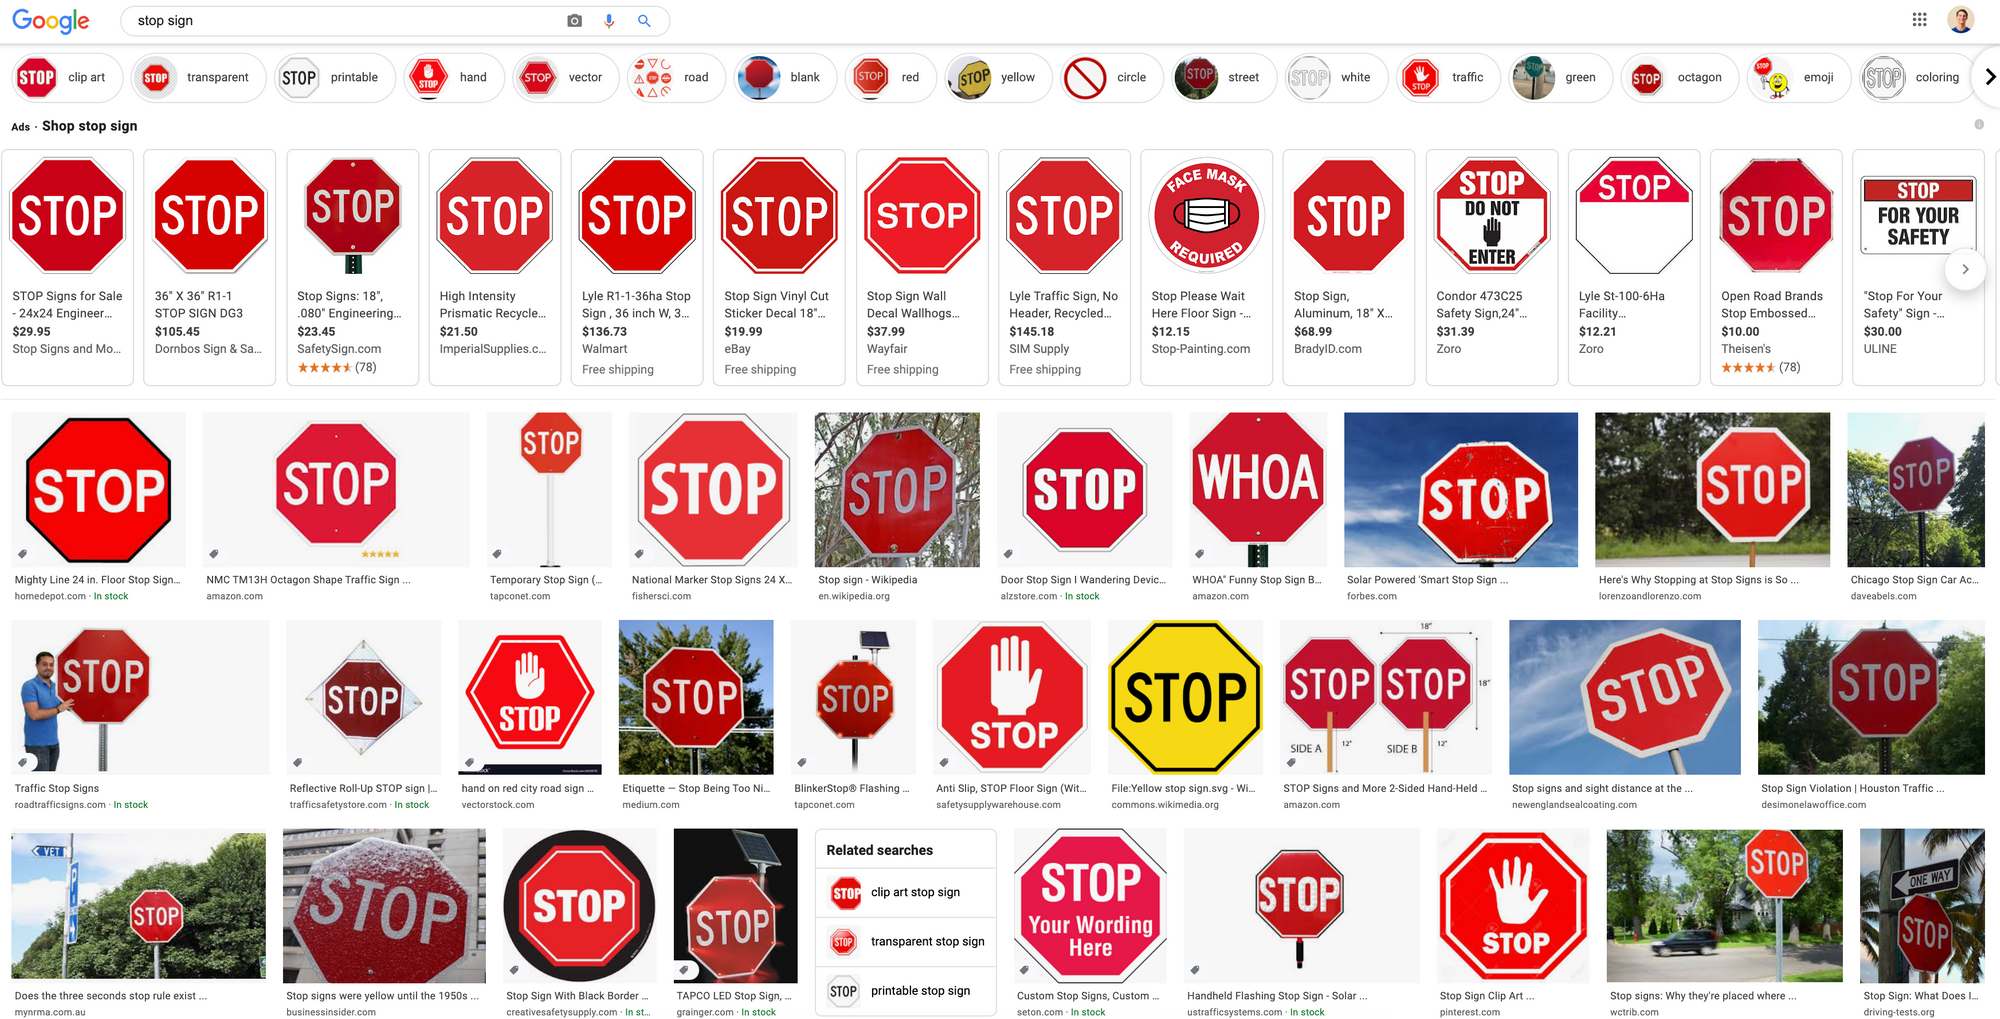 Google Image Search Results for Stop Sign